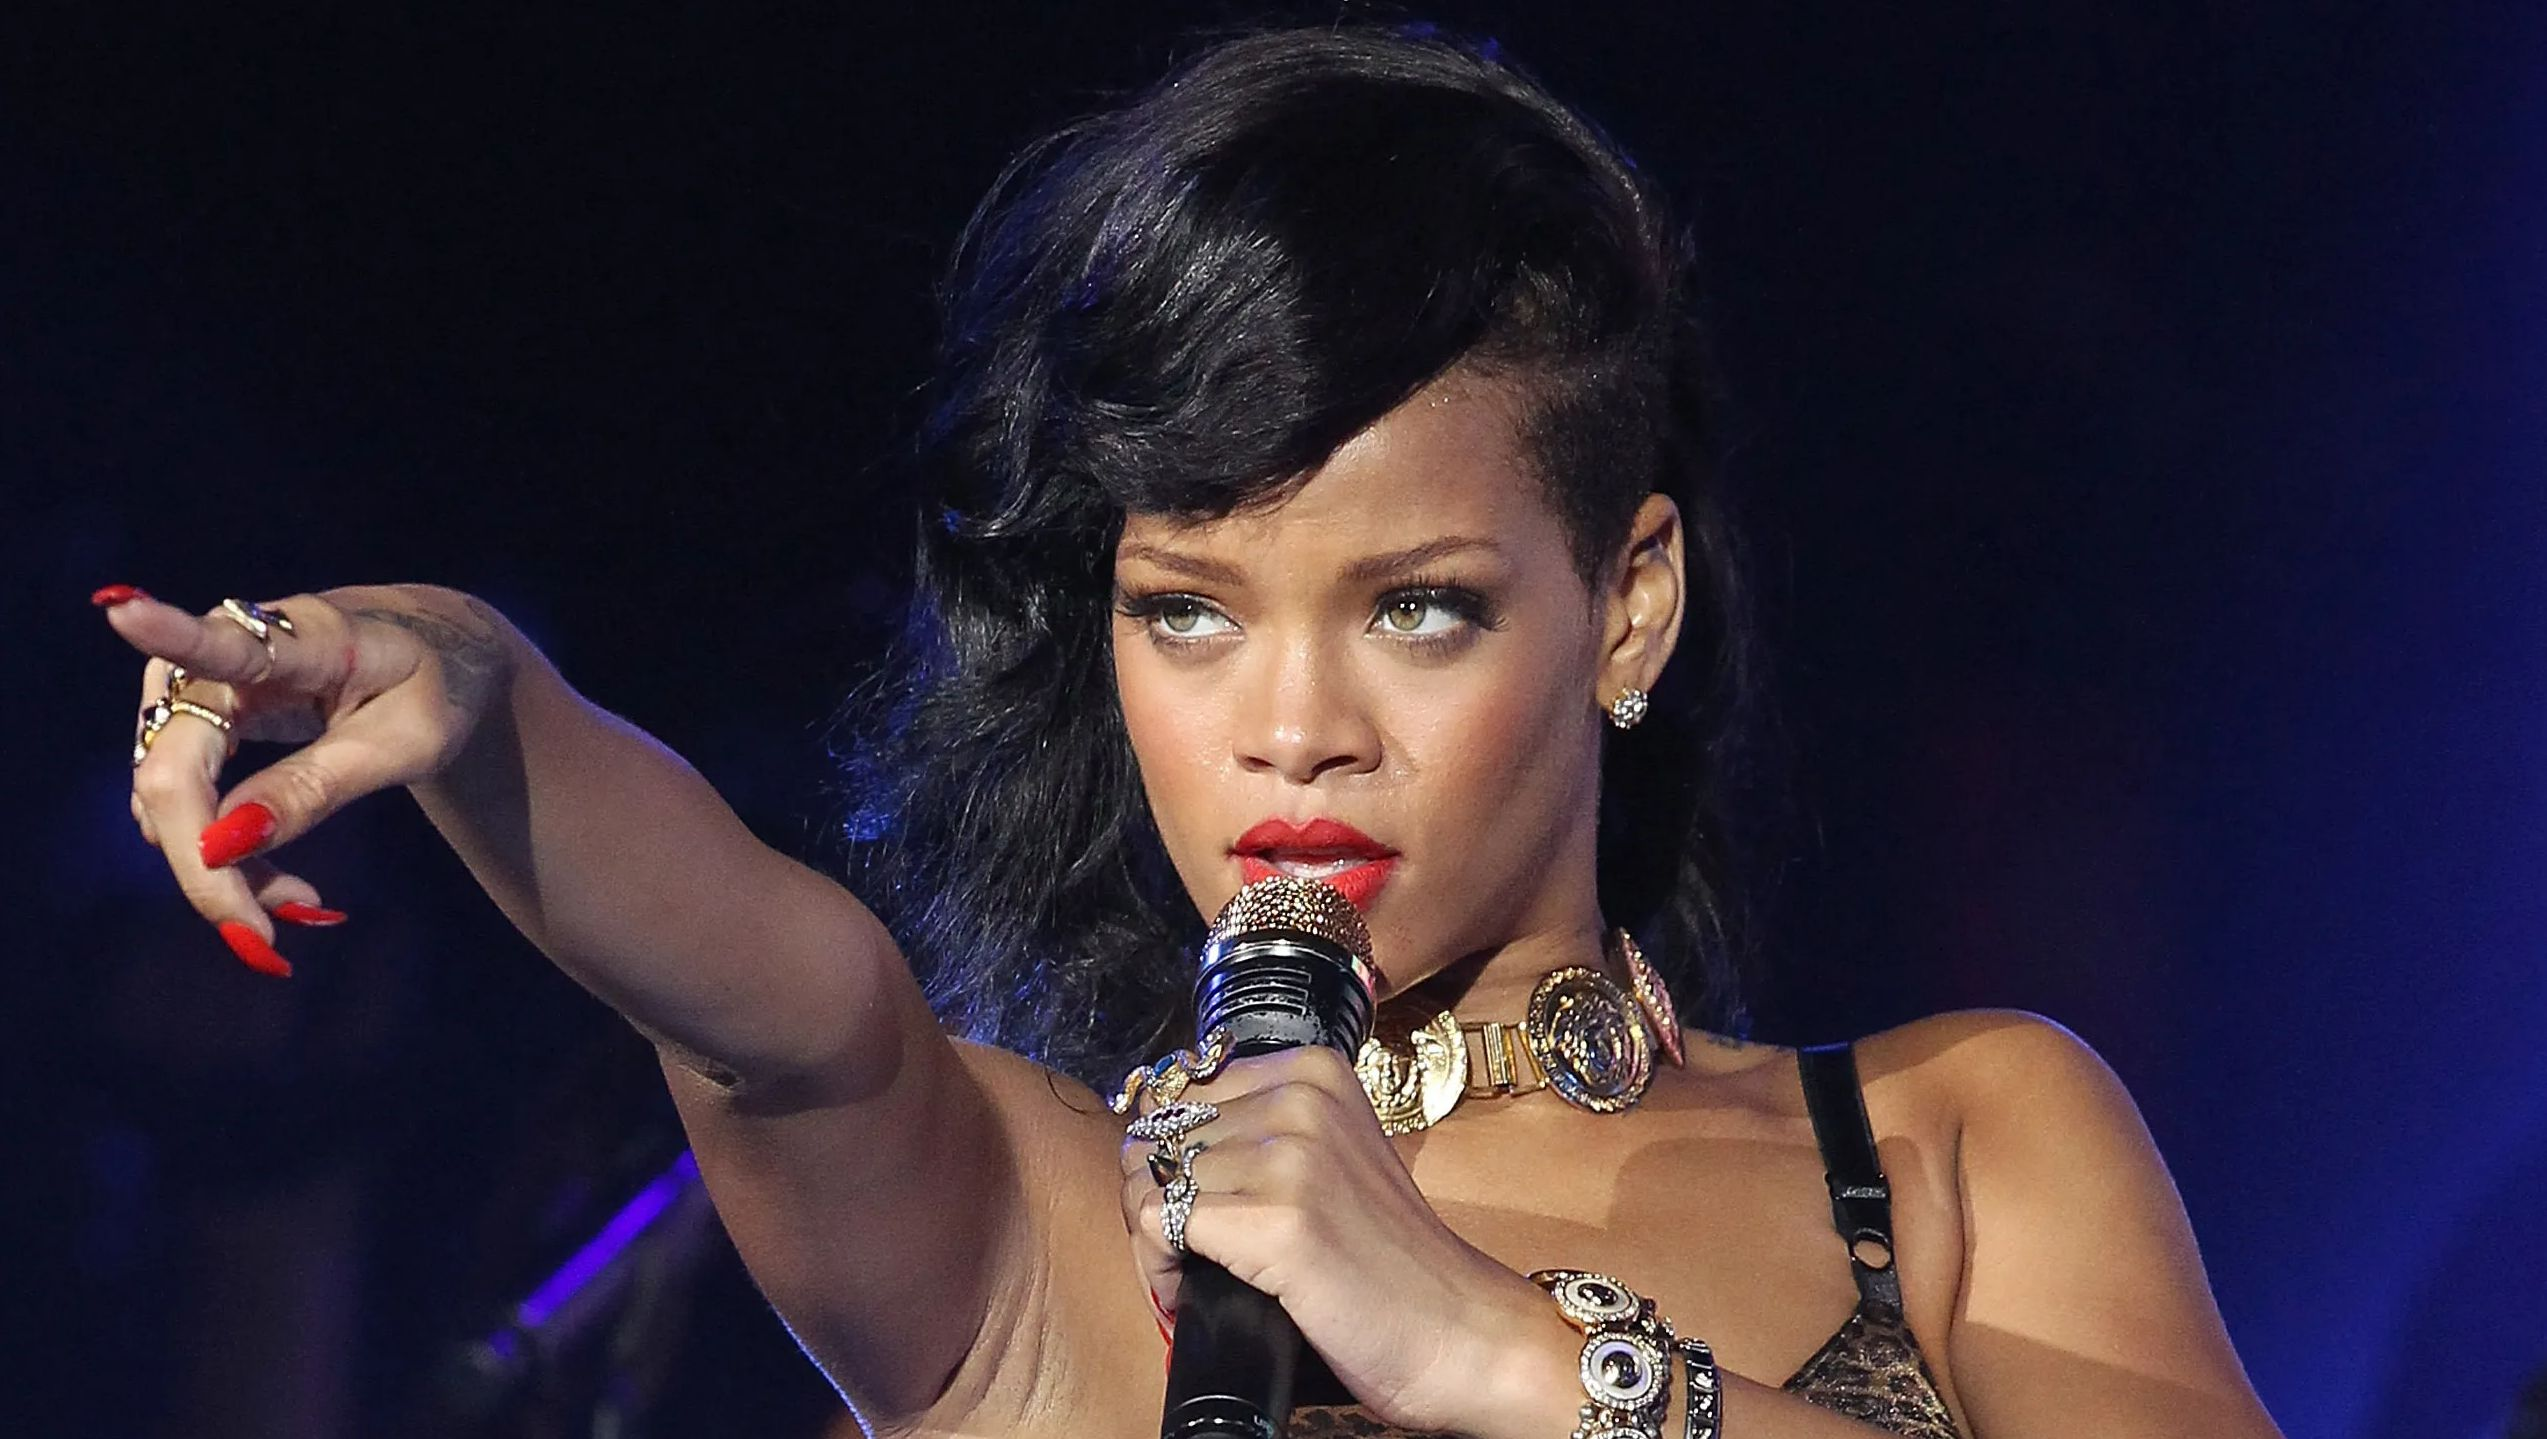 Rihanna performing onstage